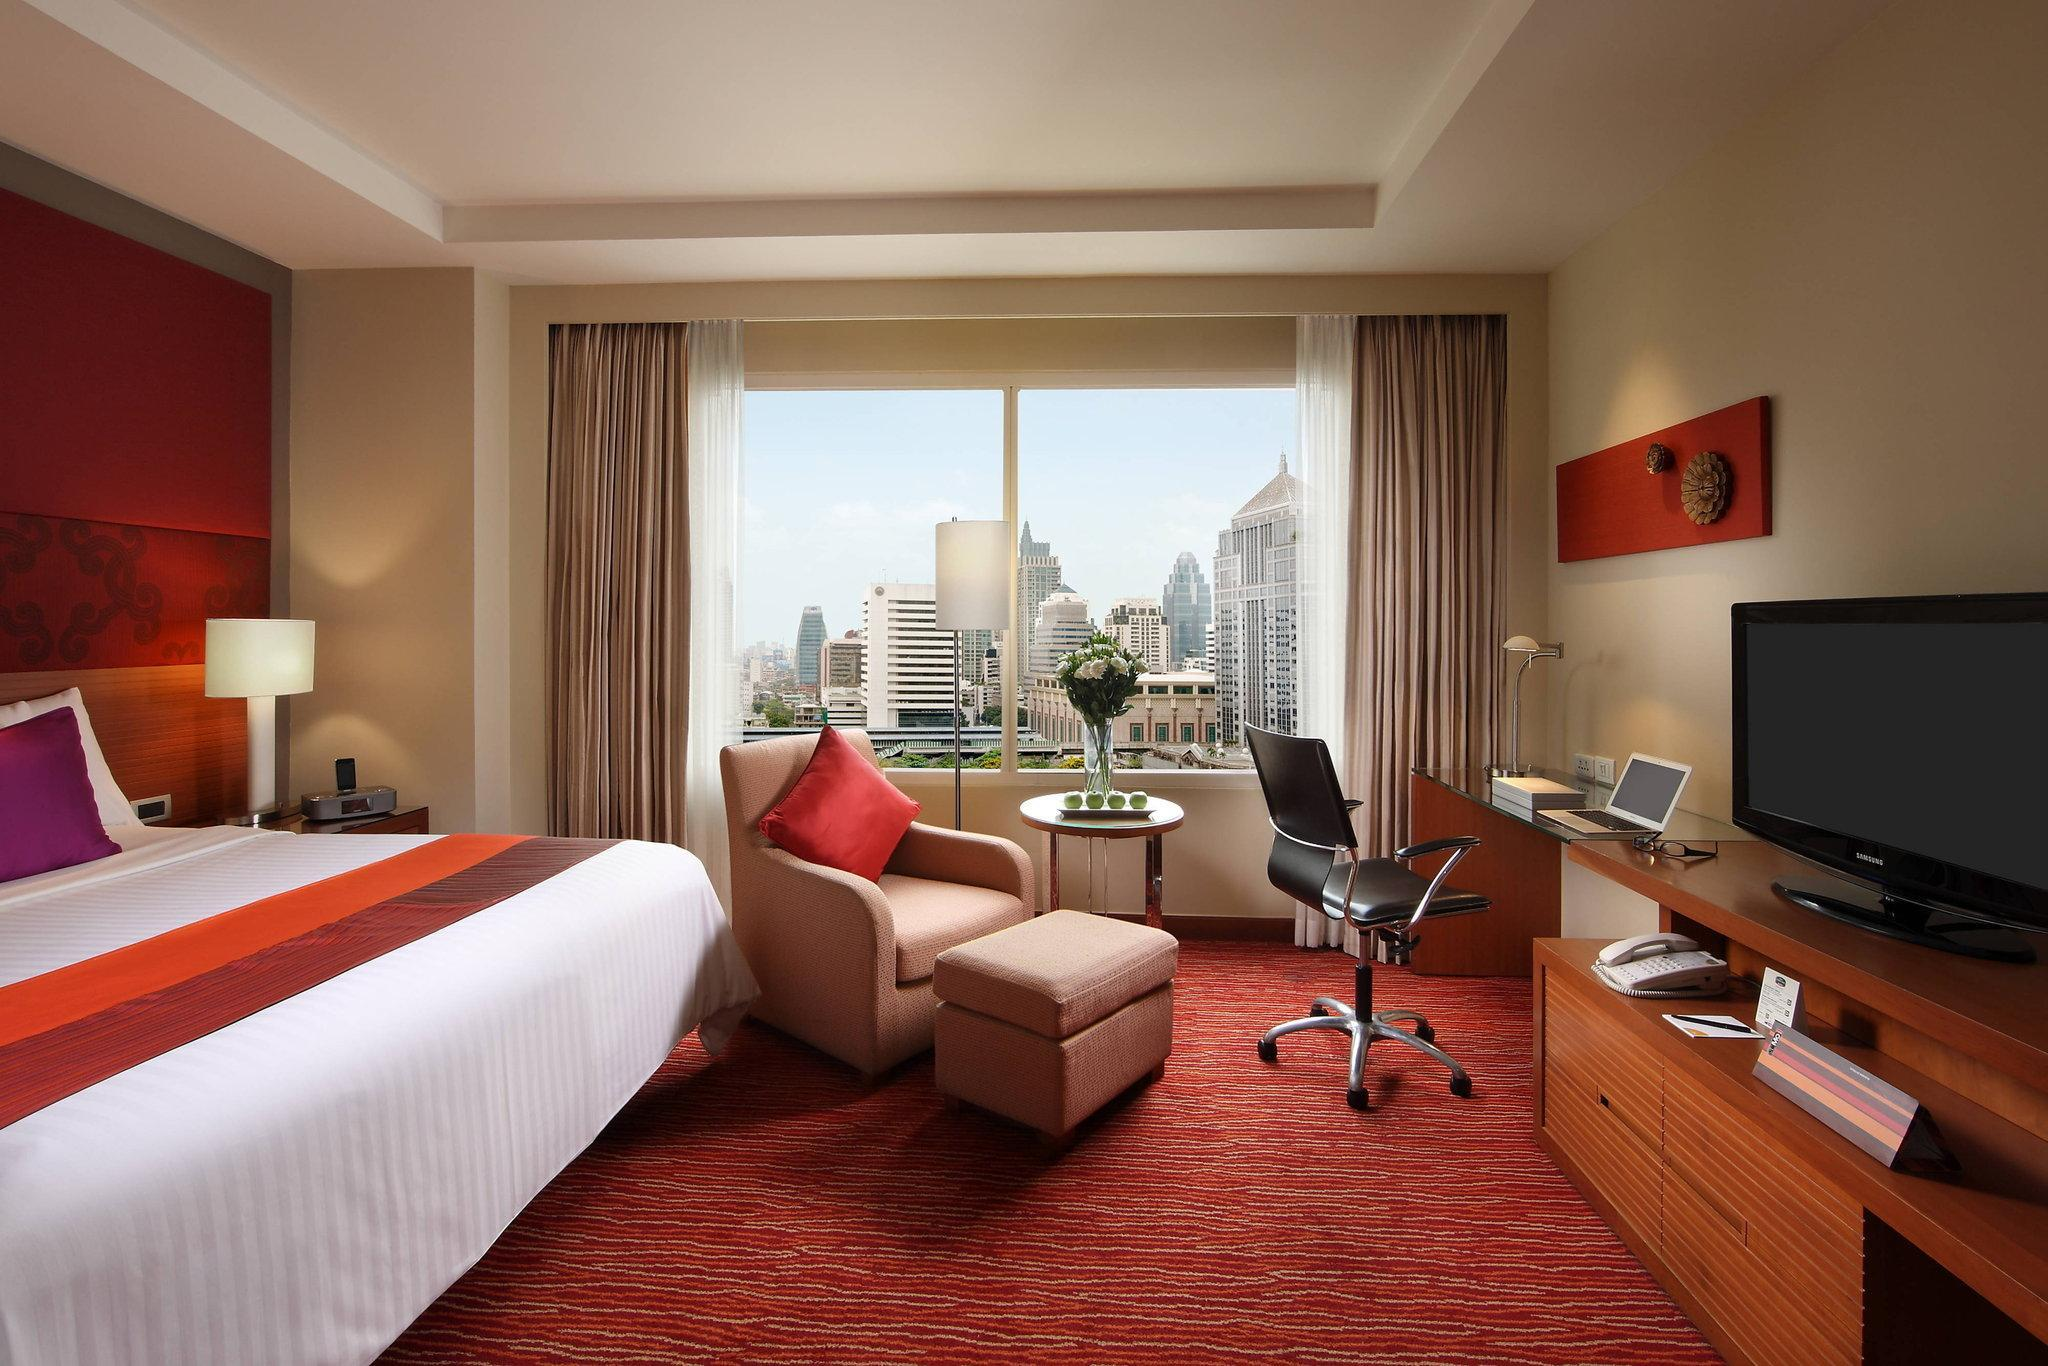 Executive, Executive lounge access, 1 King, Guest room, City view